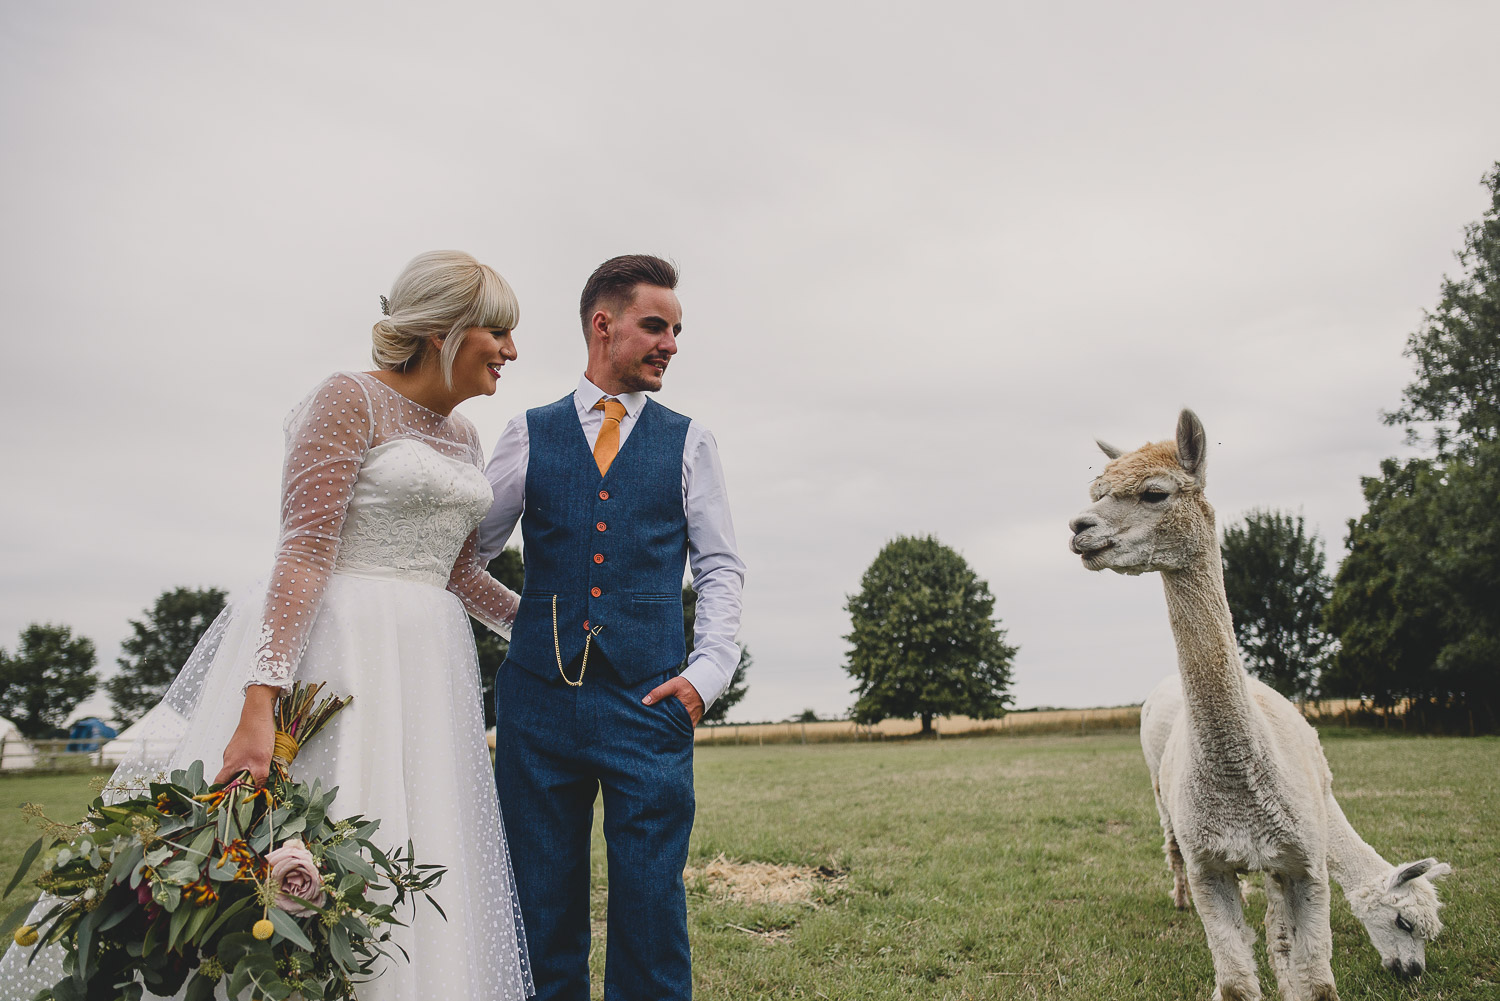 alternative norfolk wedding photographer georgia rachael